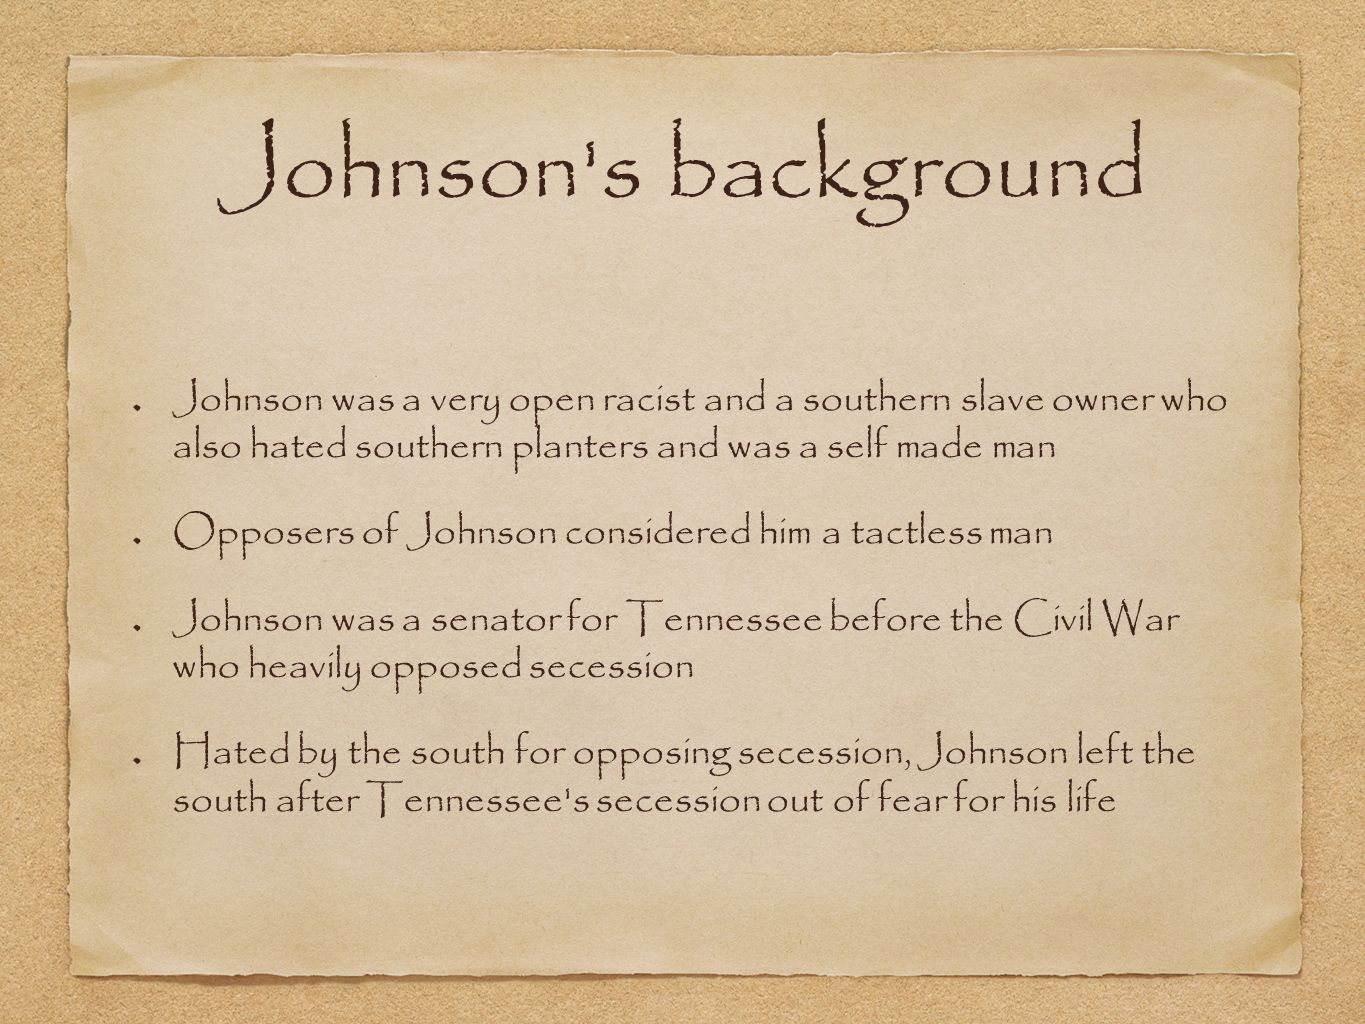 Johnson s background Johnson was a very open racist and a southern slave owner who also hated southern planters and was a self made man Opposers of Johnson considered him a tactless man Johnson was a senator for Tennessee before the Civil War who heavily opposed secession Hated by the south for opposing secession, Johnson left the south after Tennessee s secession out of fear for his life